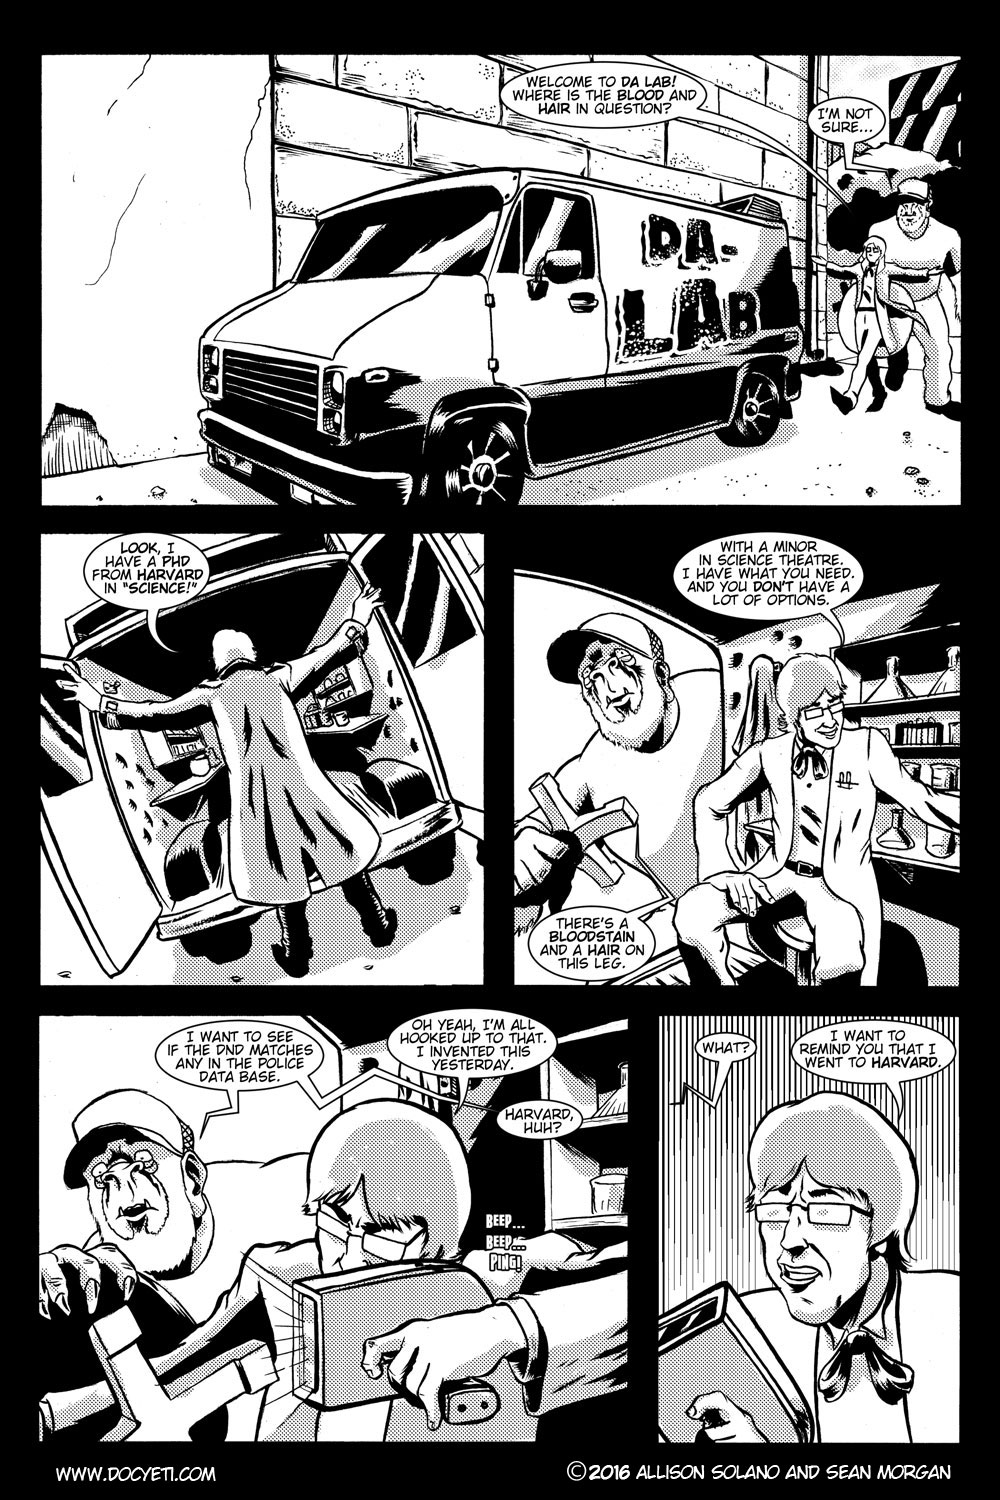 This Yeti for Hire! or the Yeti with the Lace Kerchief! pg.19